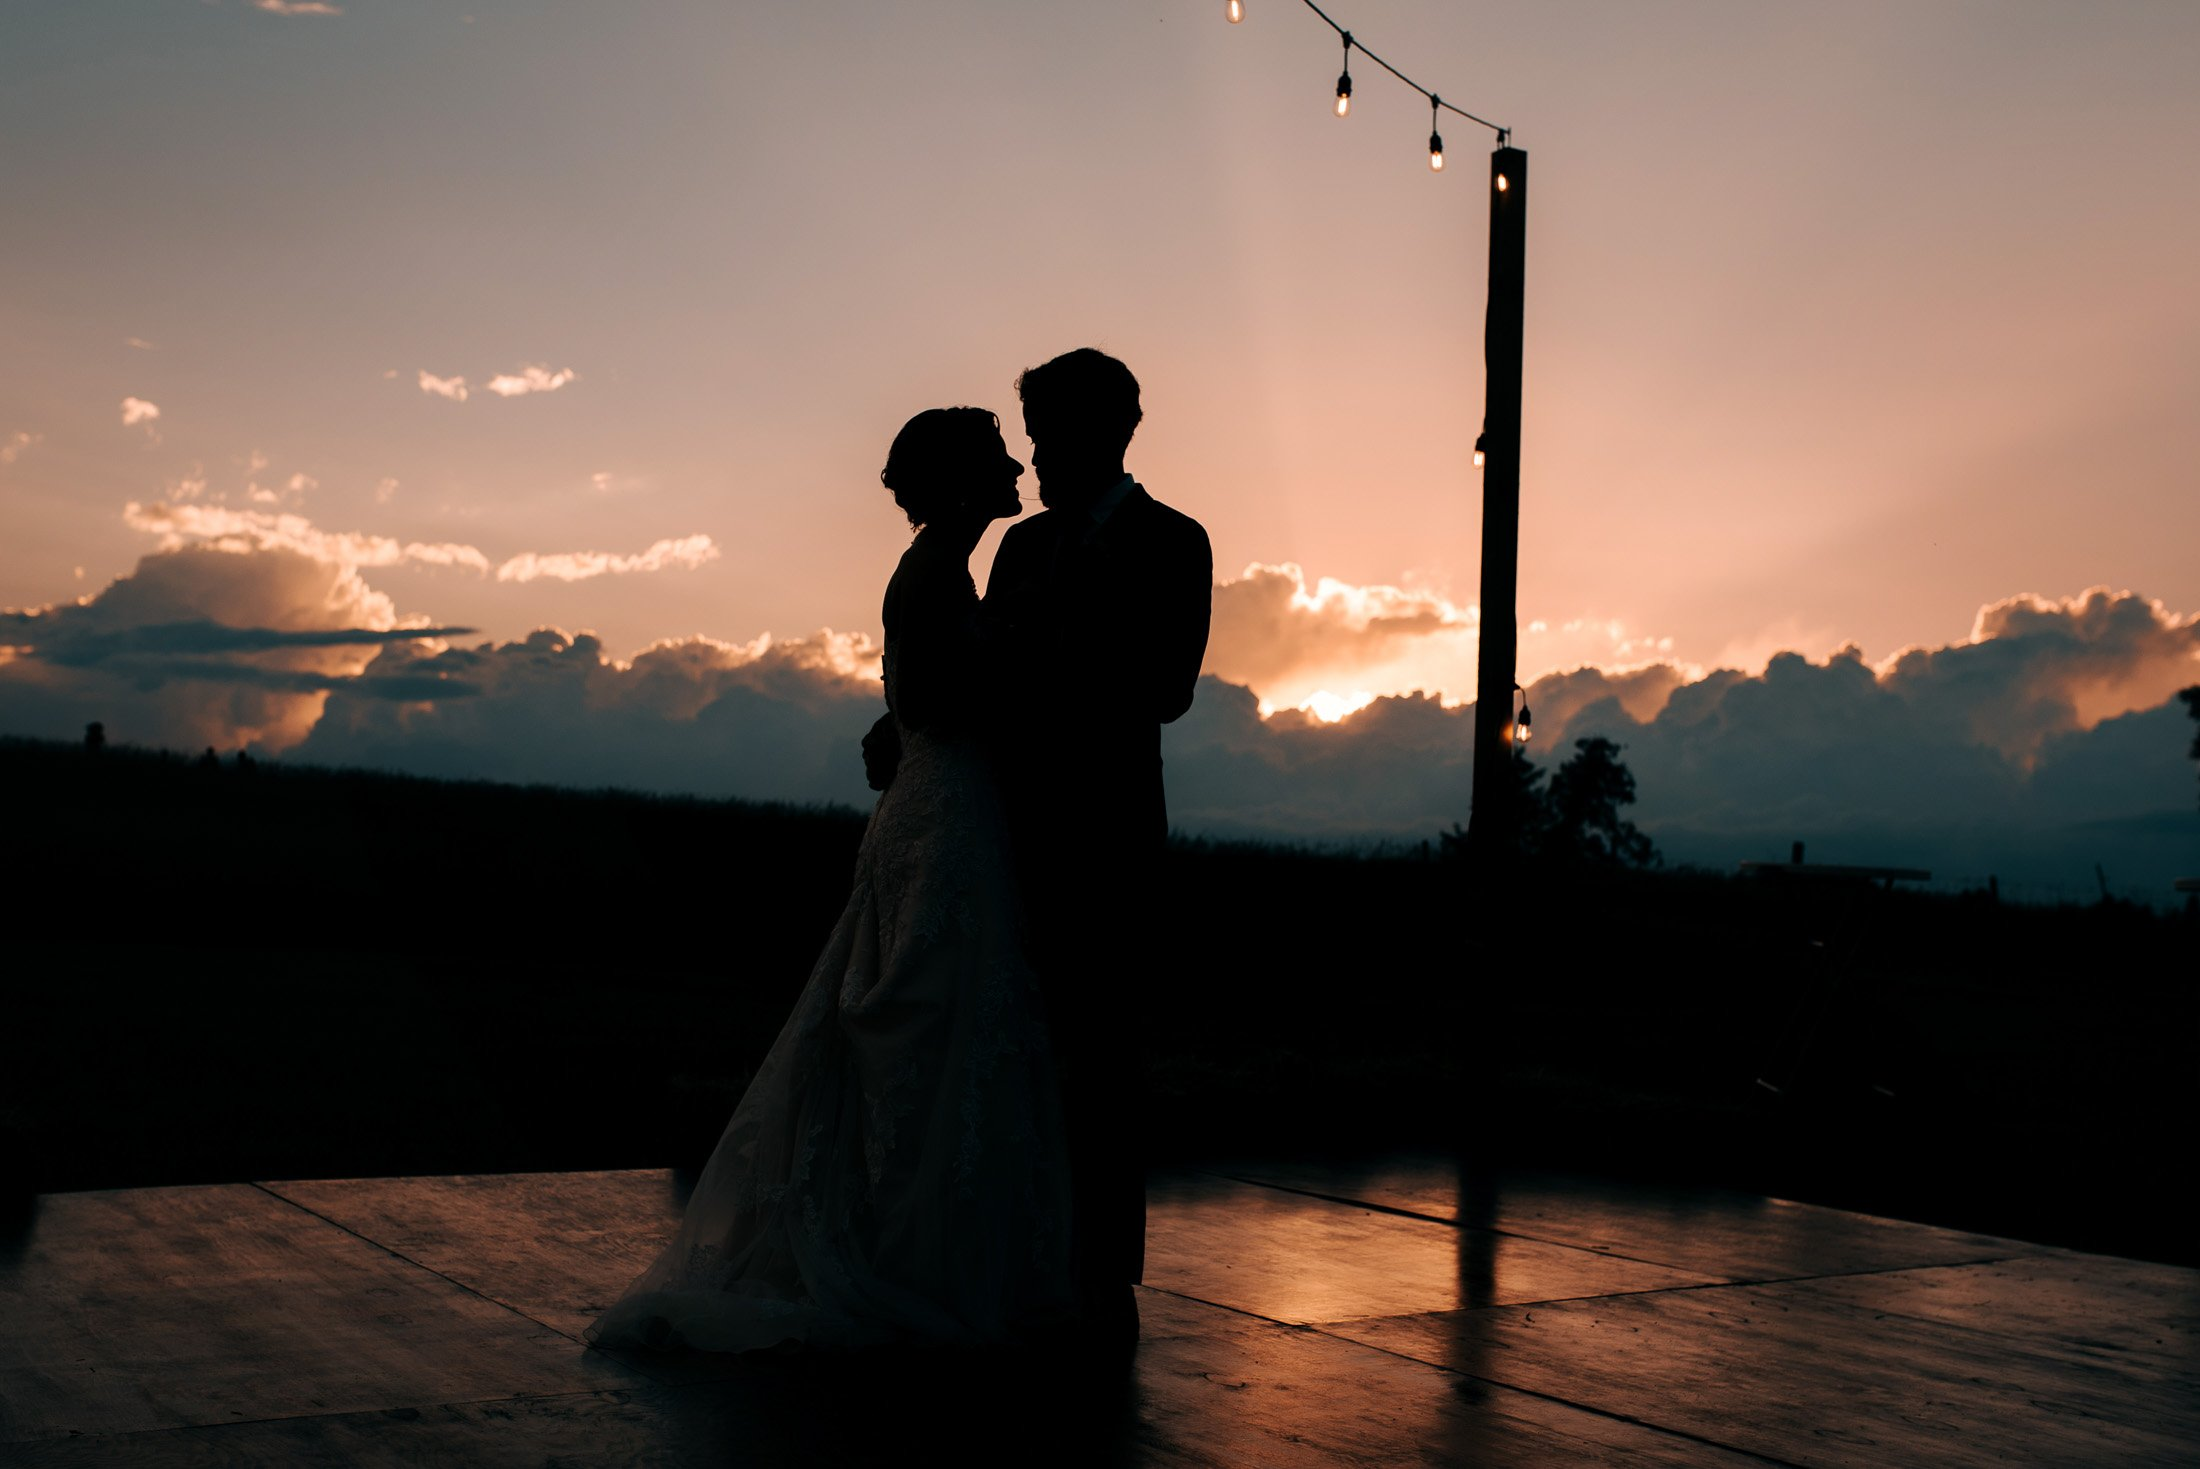 028 - wedding first dance outdoors sunset